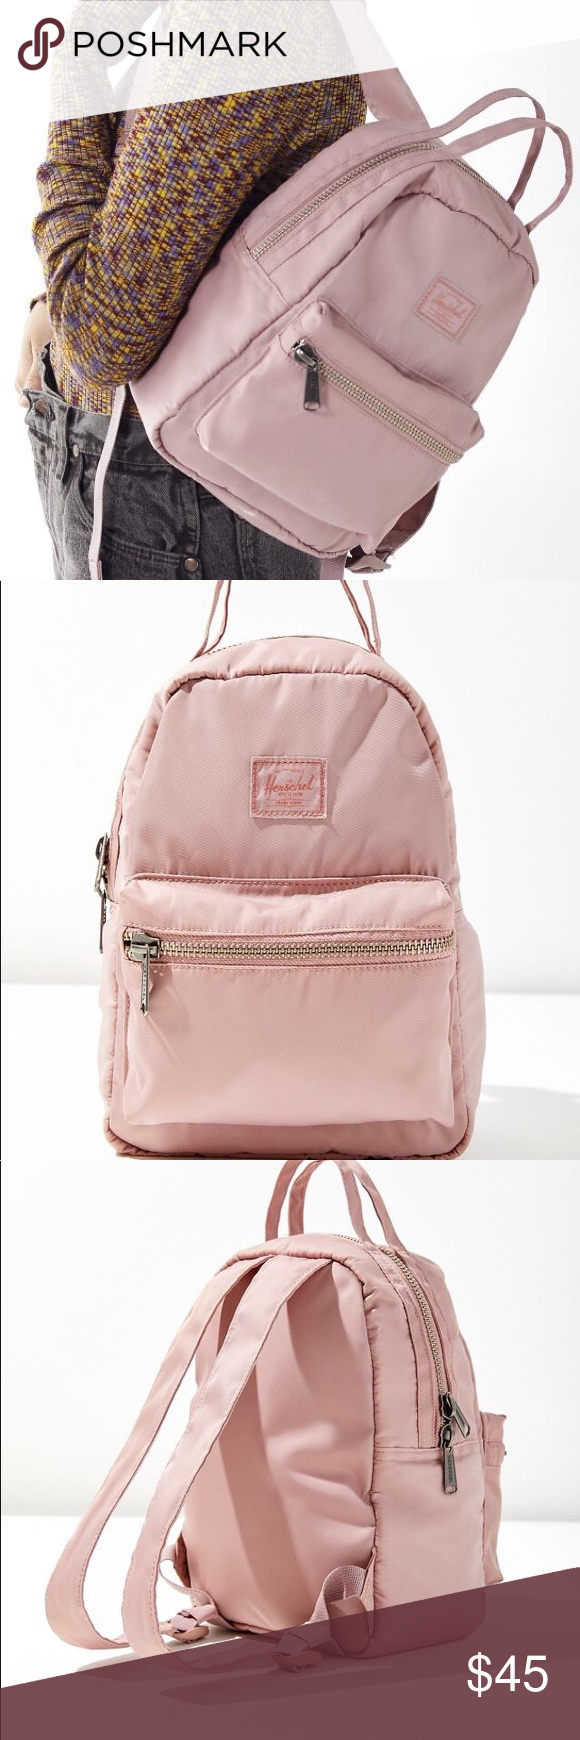 a8d6572727 💕NWT Herschel Supply Co Satin Nova mini backpack Cute and compact Herschel  mini backpack in a mini square silhouette. Sleek flight satin fabrication  with ...